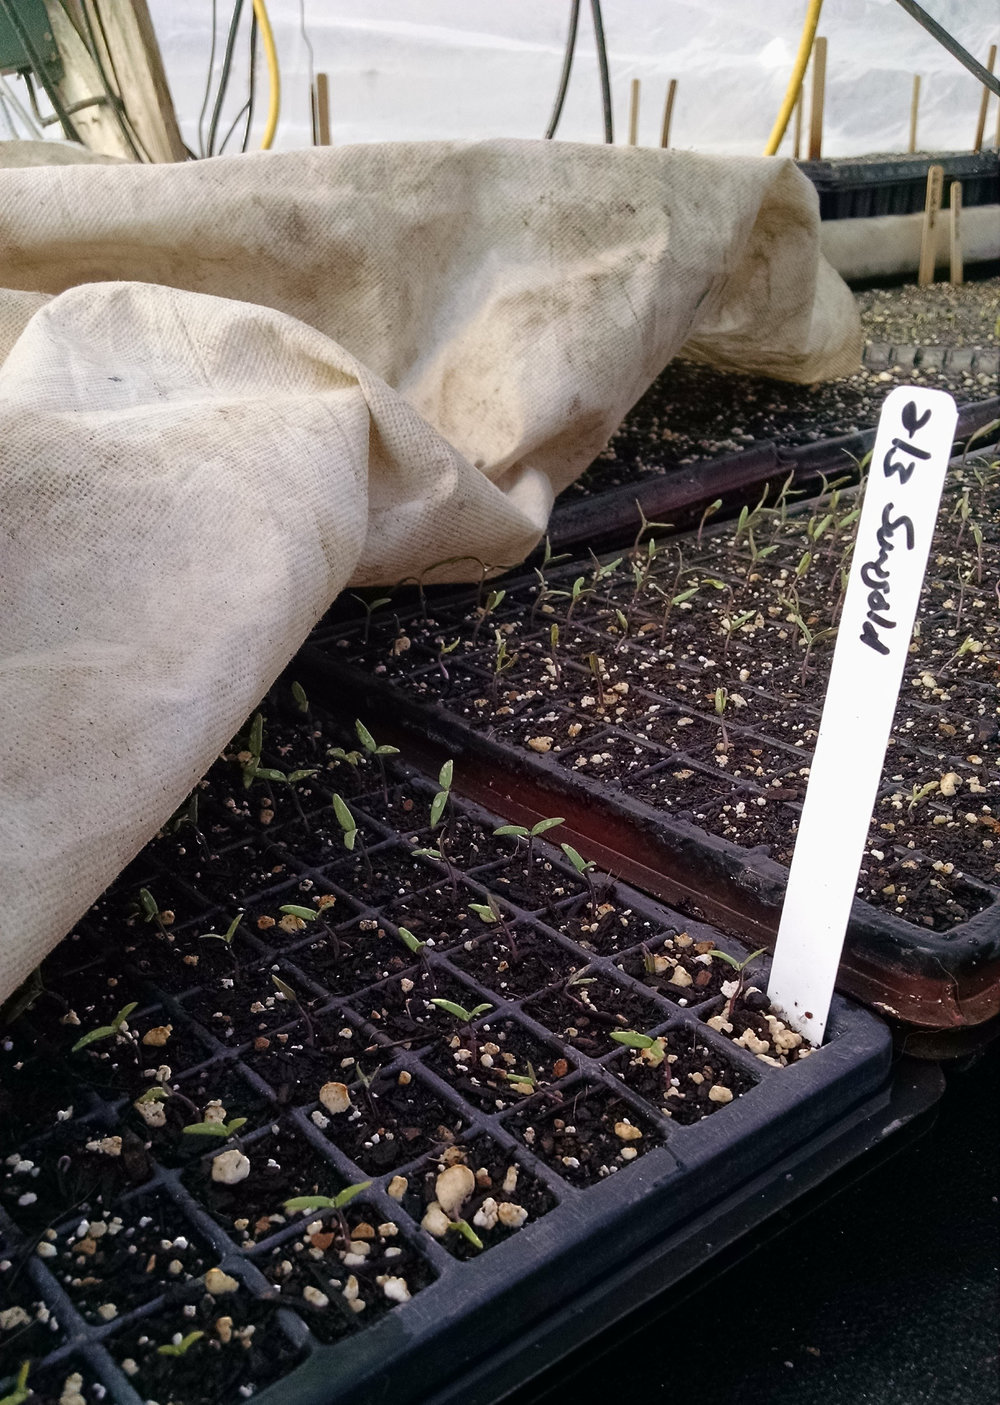 Sungold tomato seedlings getting tucked in for the night